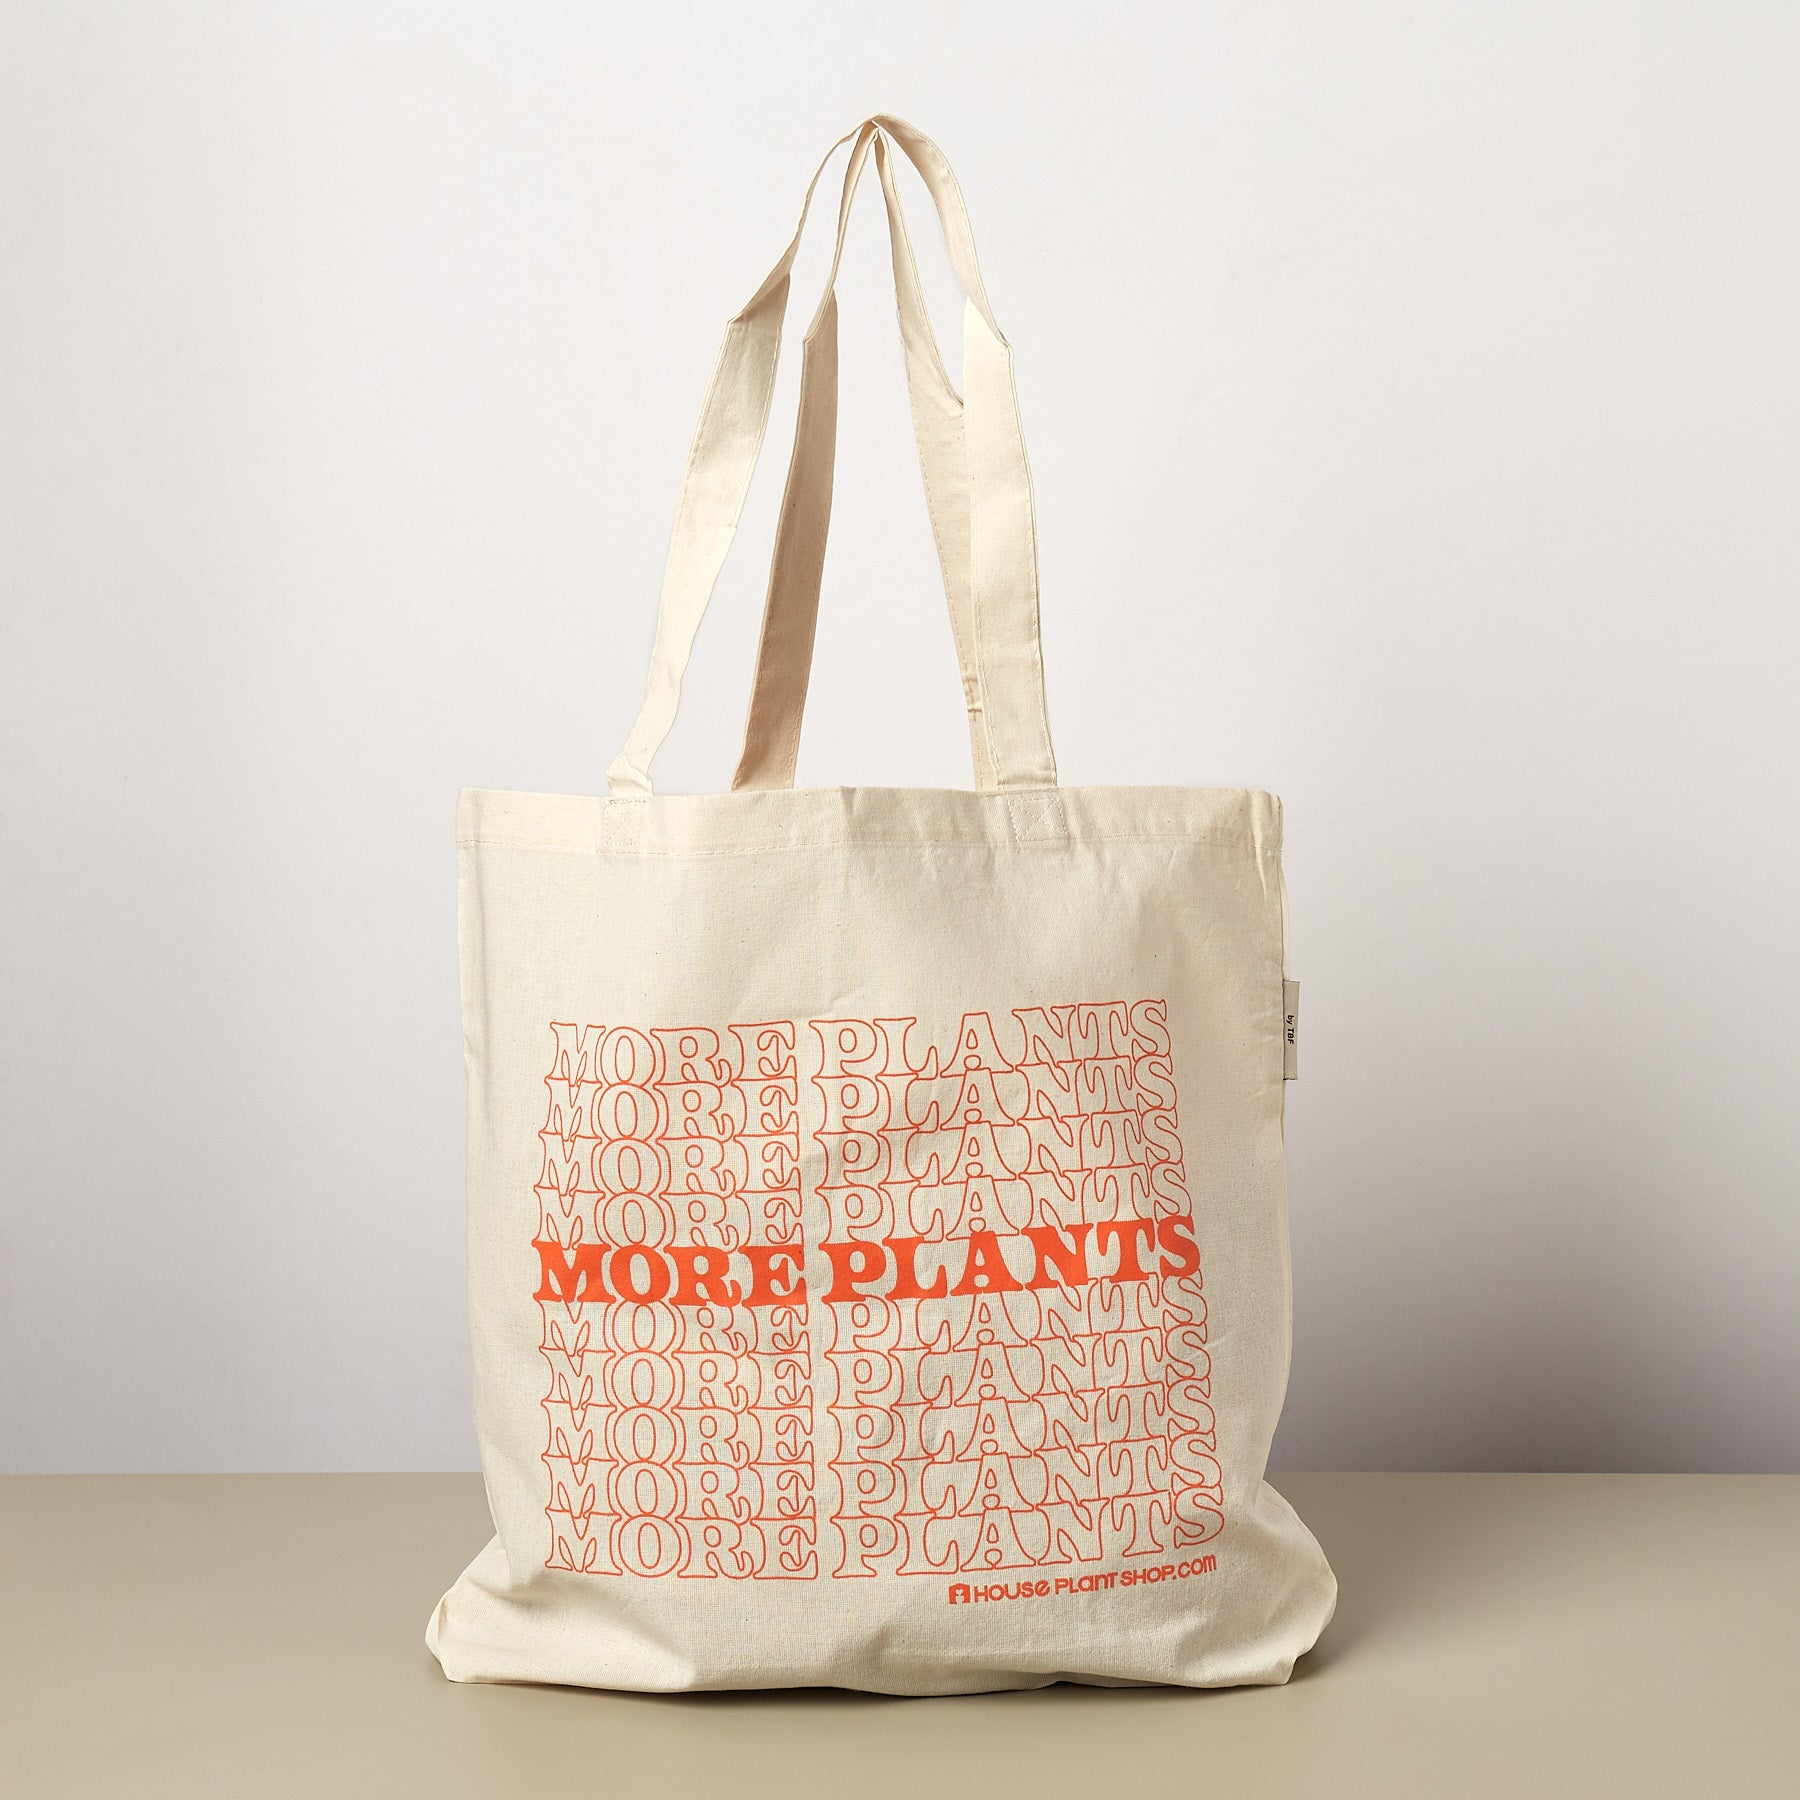 More Plants Tote Bag - House Plant Shop